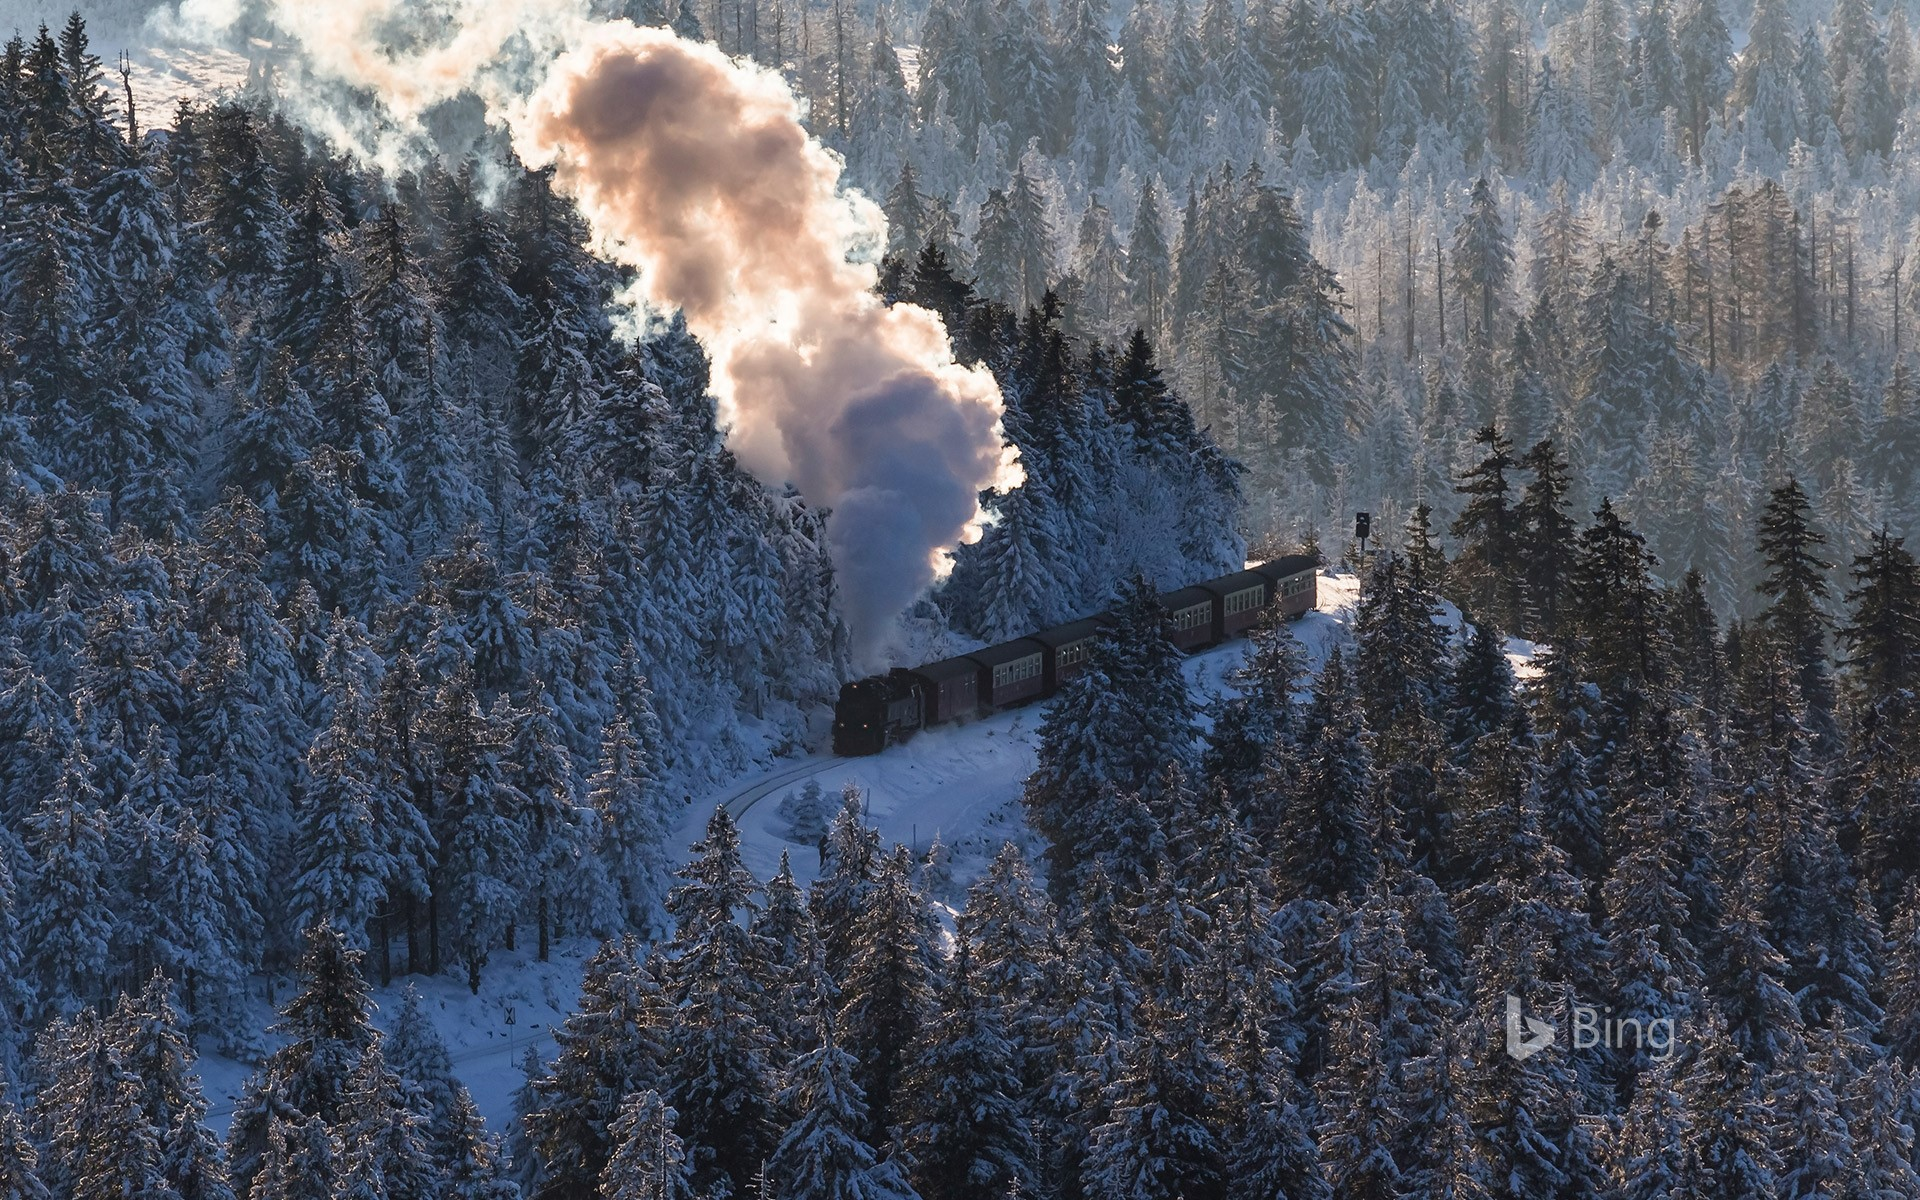 Harz Narrow Gauge Railway, Brocken, Harz National Park, Saxony-Anhalt, Germany